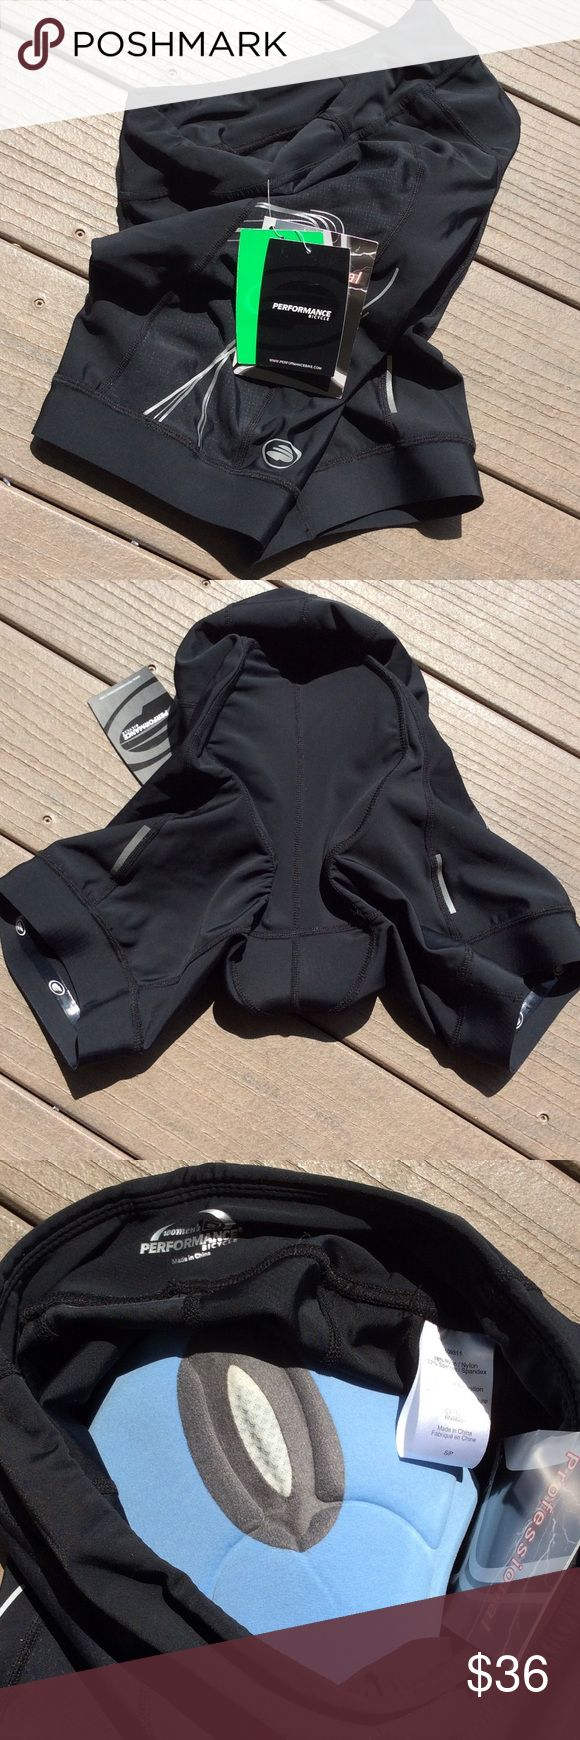 NWT, Women's padded performance bicycle shorts, S Black padded shorts with grip around thighs. Size small runs true to size. Smoke free and pet free home. Super nice!! Performance Bicycle Shorts